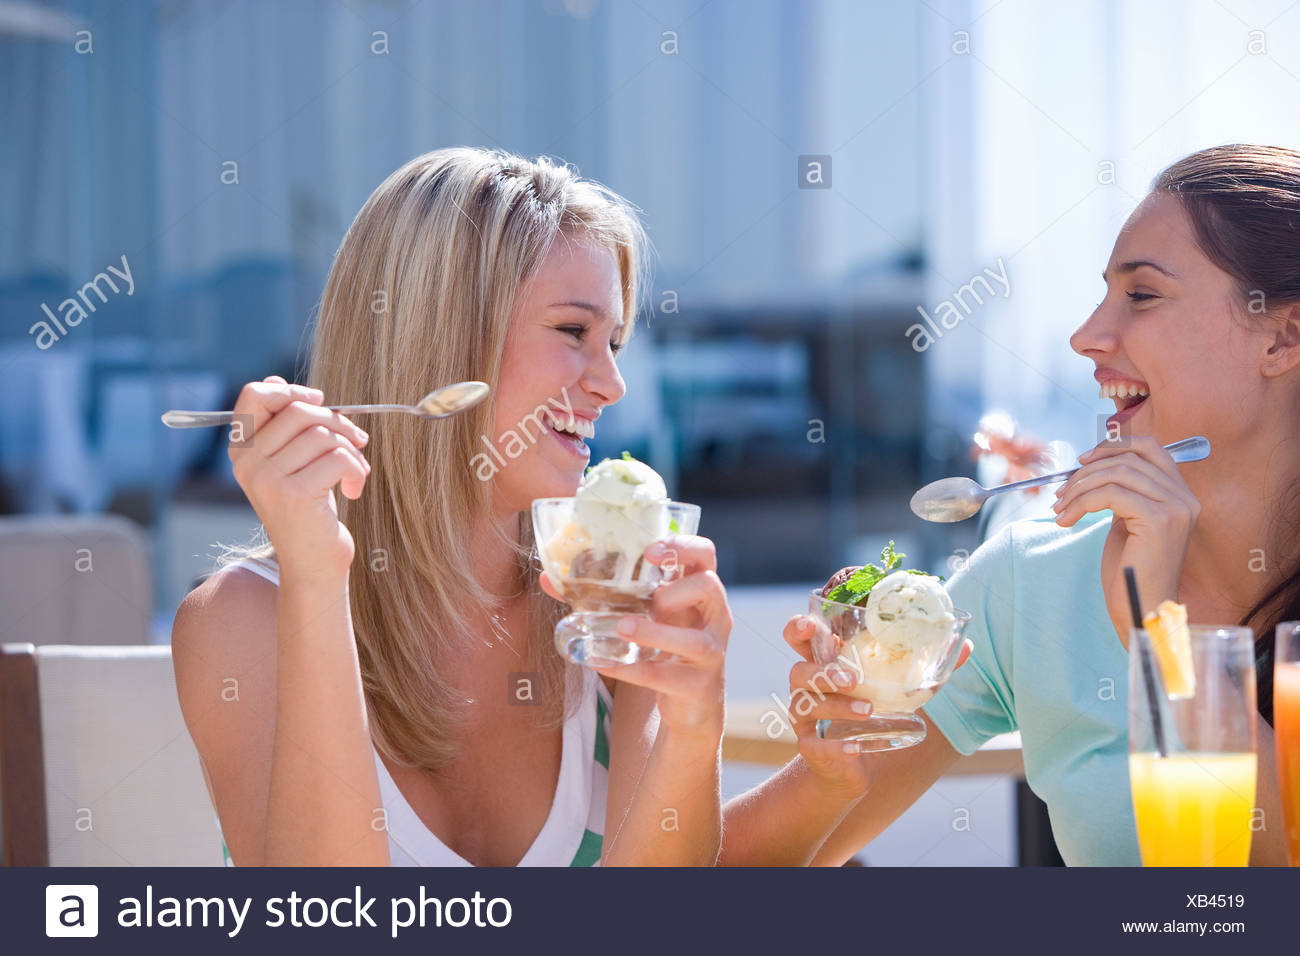 women eating eachother out